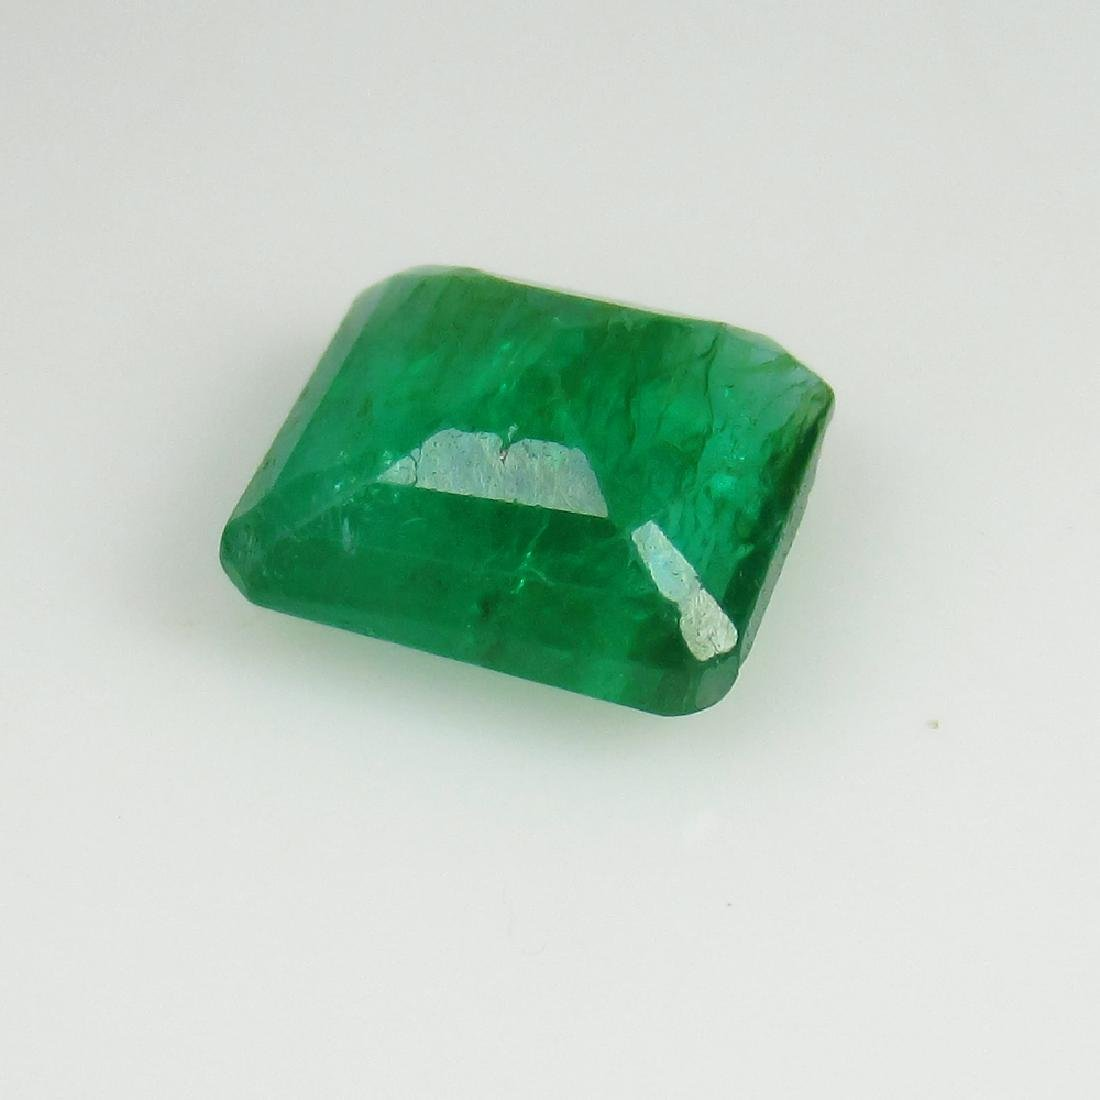 IGI Certified 2.90 Ct Genuine Zambian Emerald AAA++ - 5